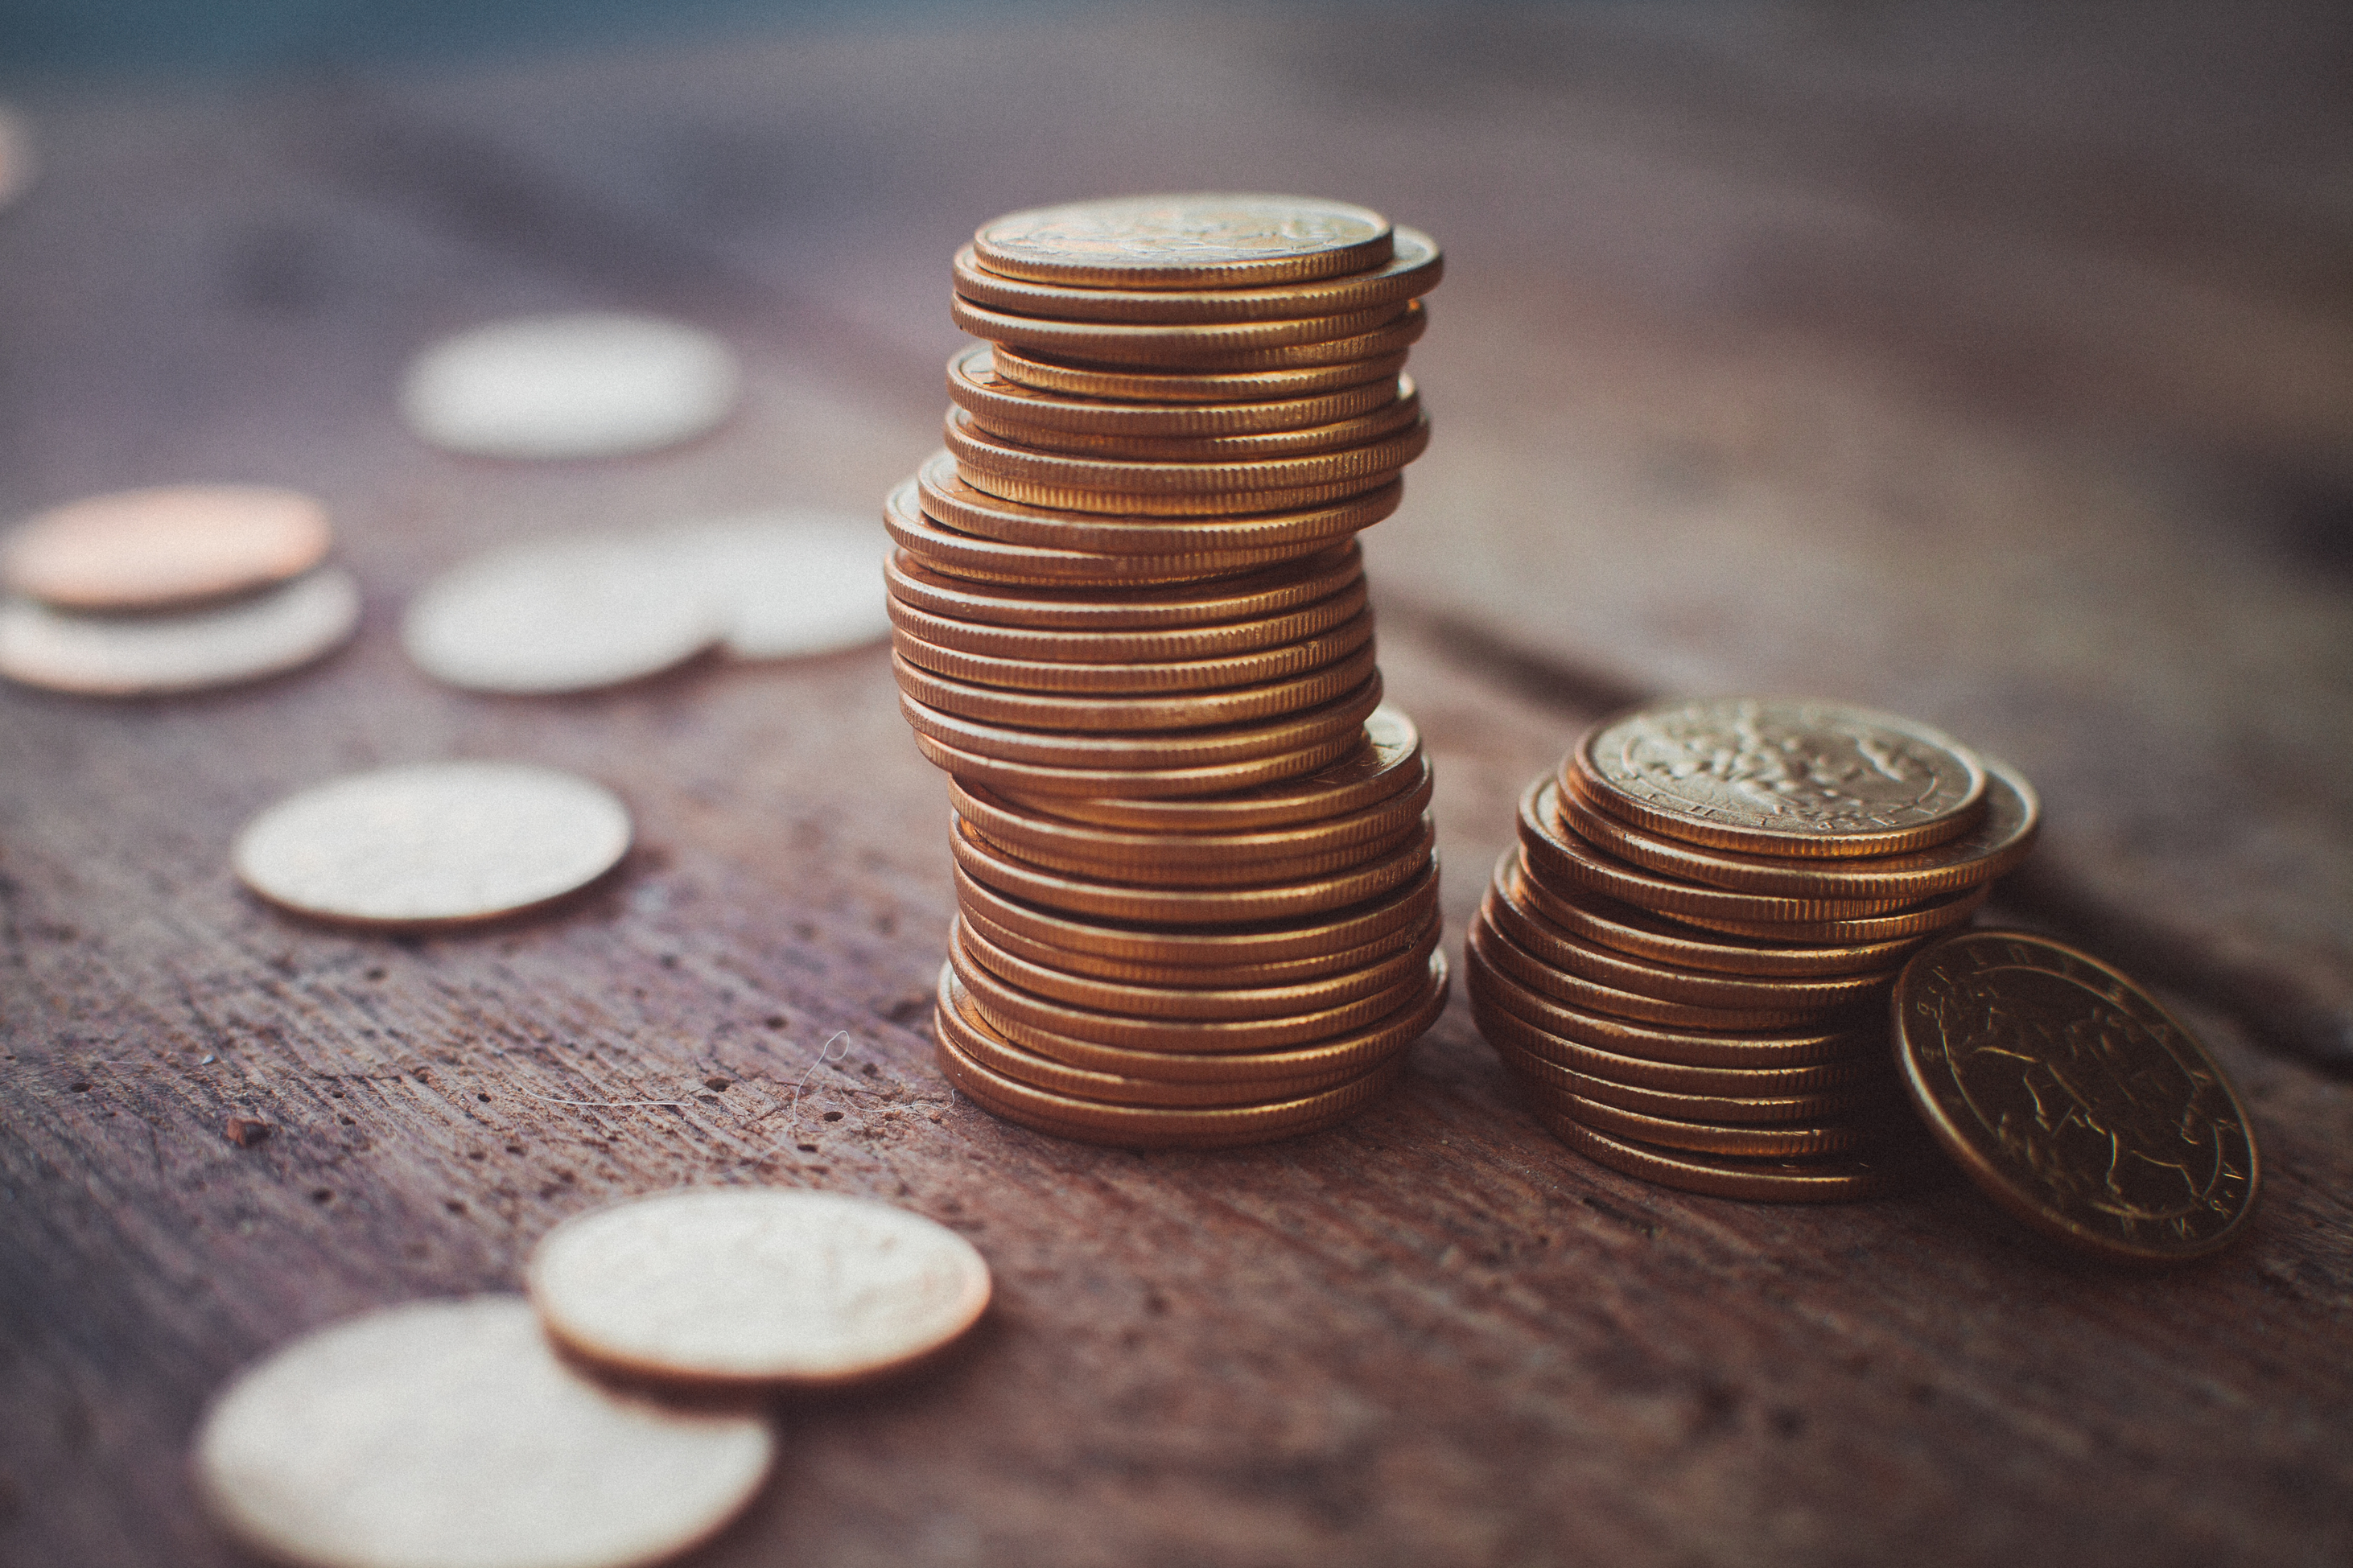 Stack of coins on a wood desk